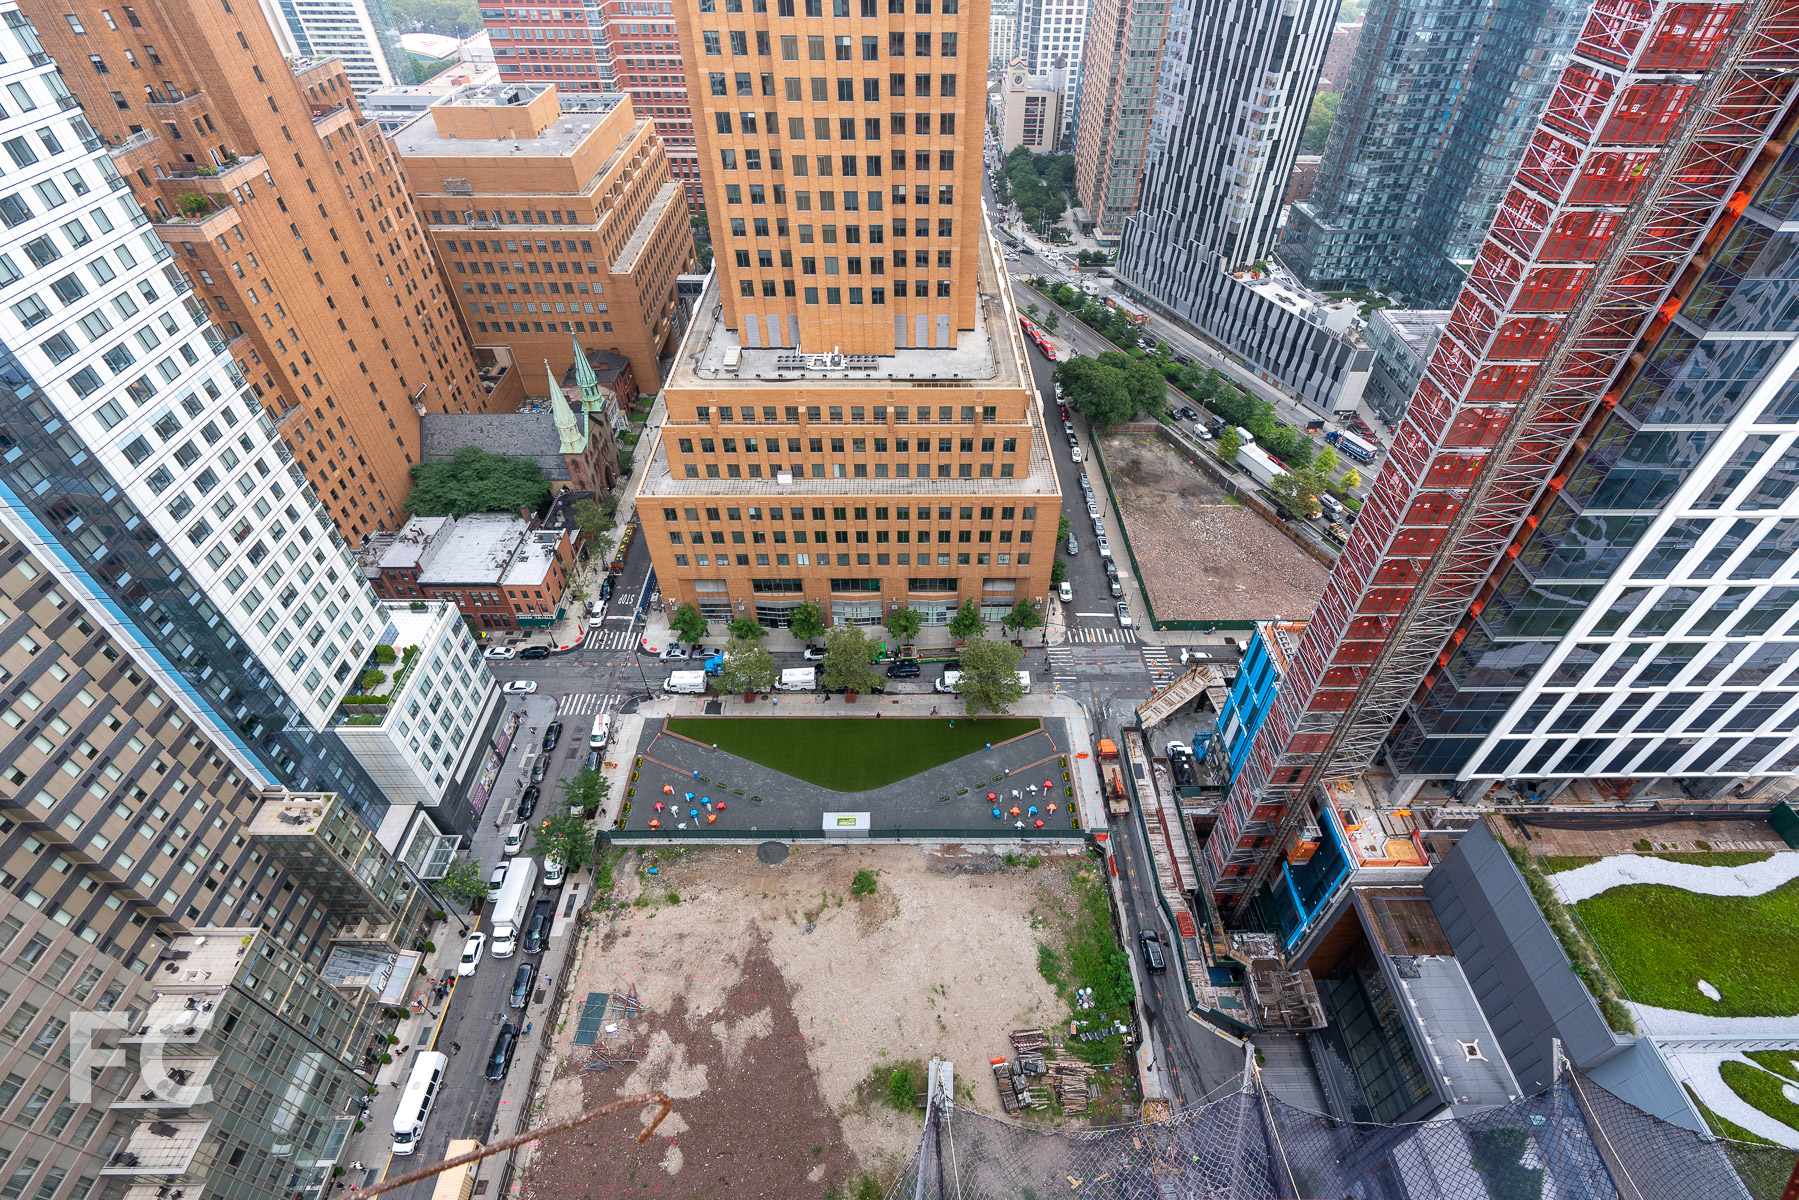 Looking down on the future site of Willoughby Square Park.